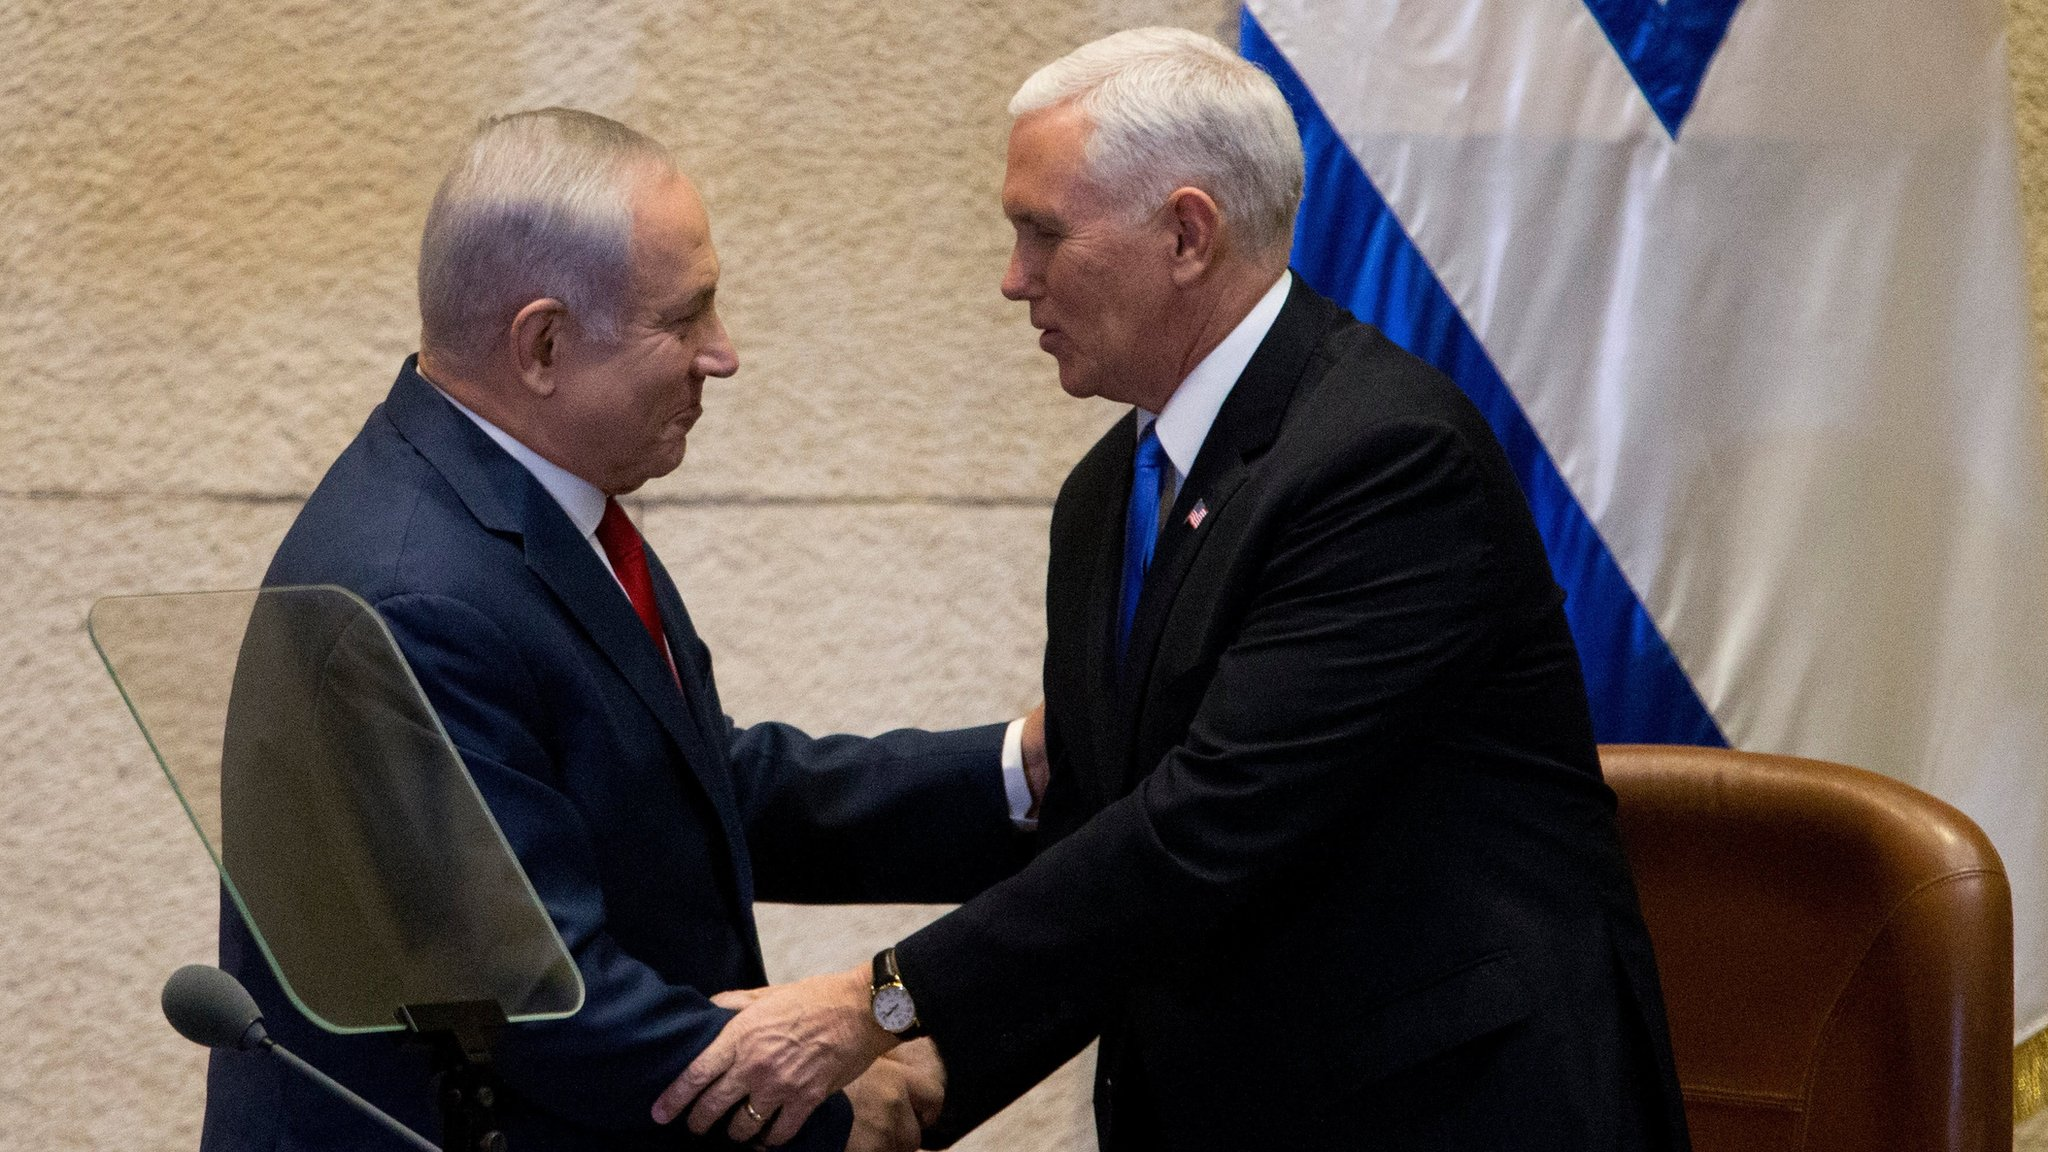 Mr Pence in a shake with Netanyahu